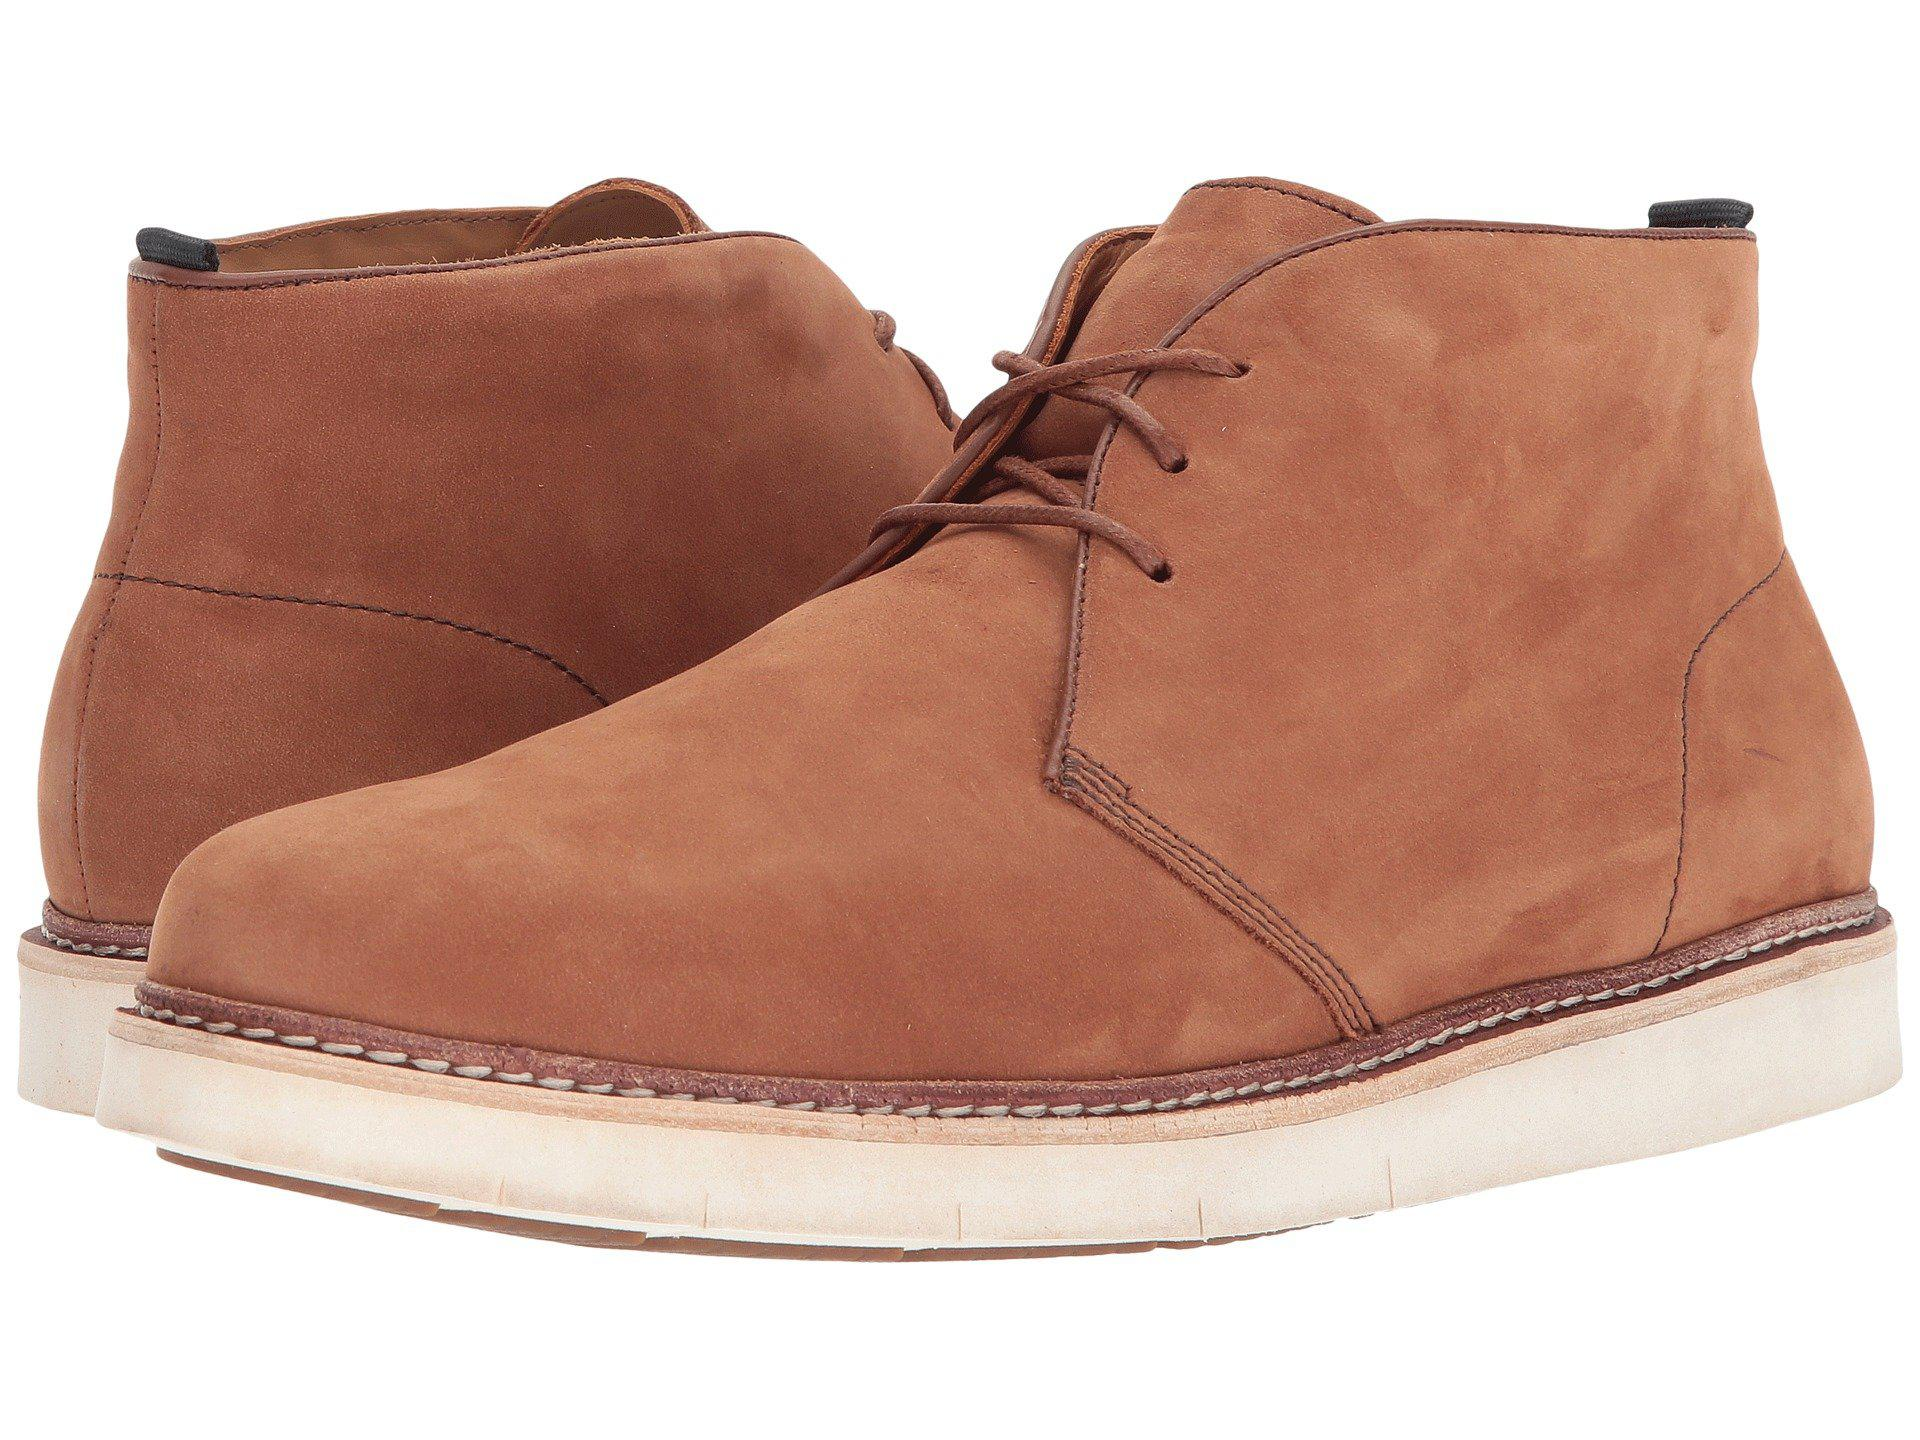 a8cb6a436cb Lyst - Cole Haan Tanner Chukka in Brown for Men - Save 57%